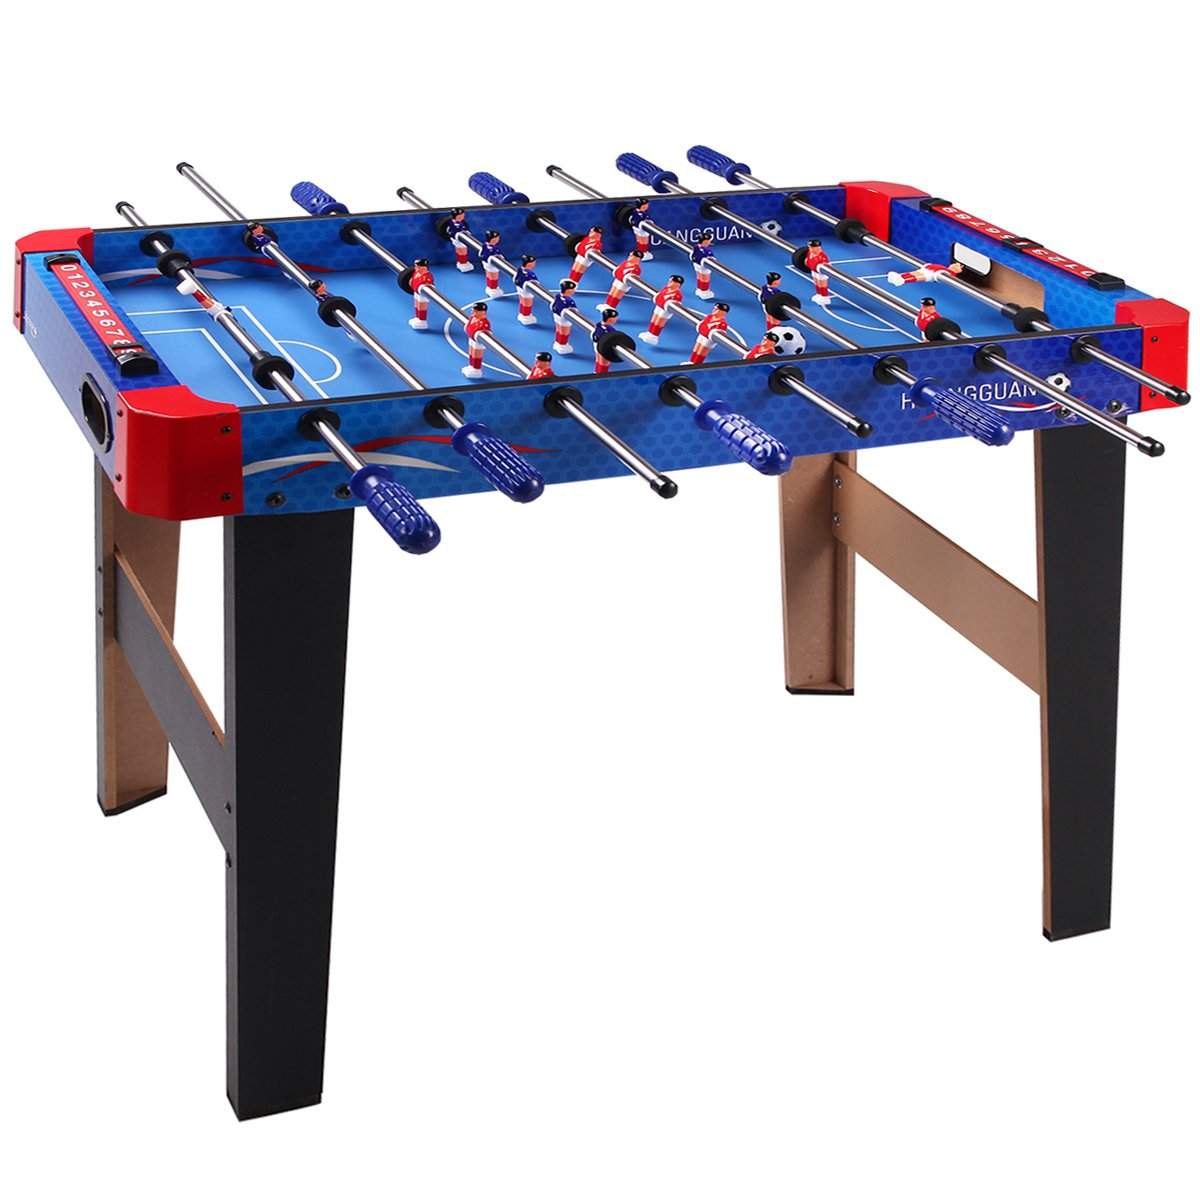 Giantex Foosball Table For Kids Soccer Football Competition Sized Arcade  Game Room For Family Use Christmas